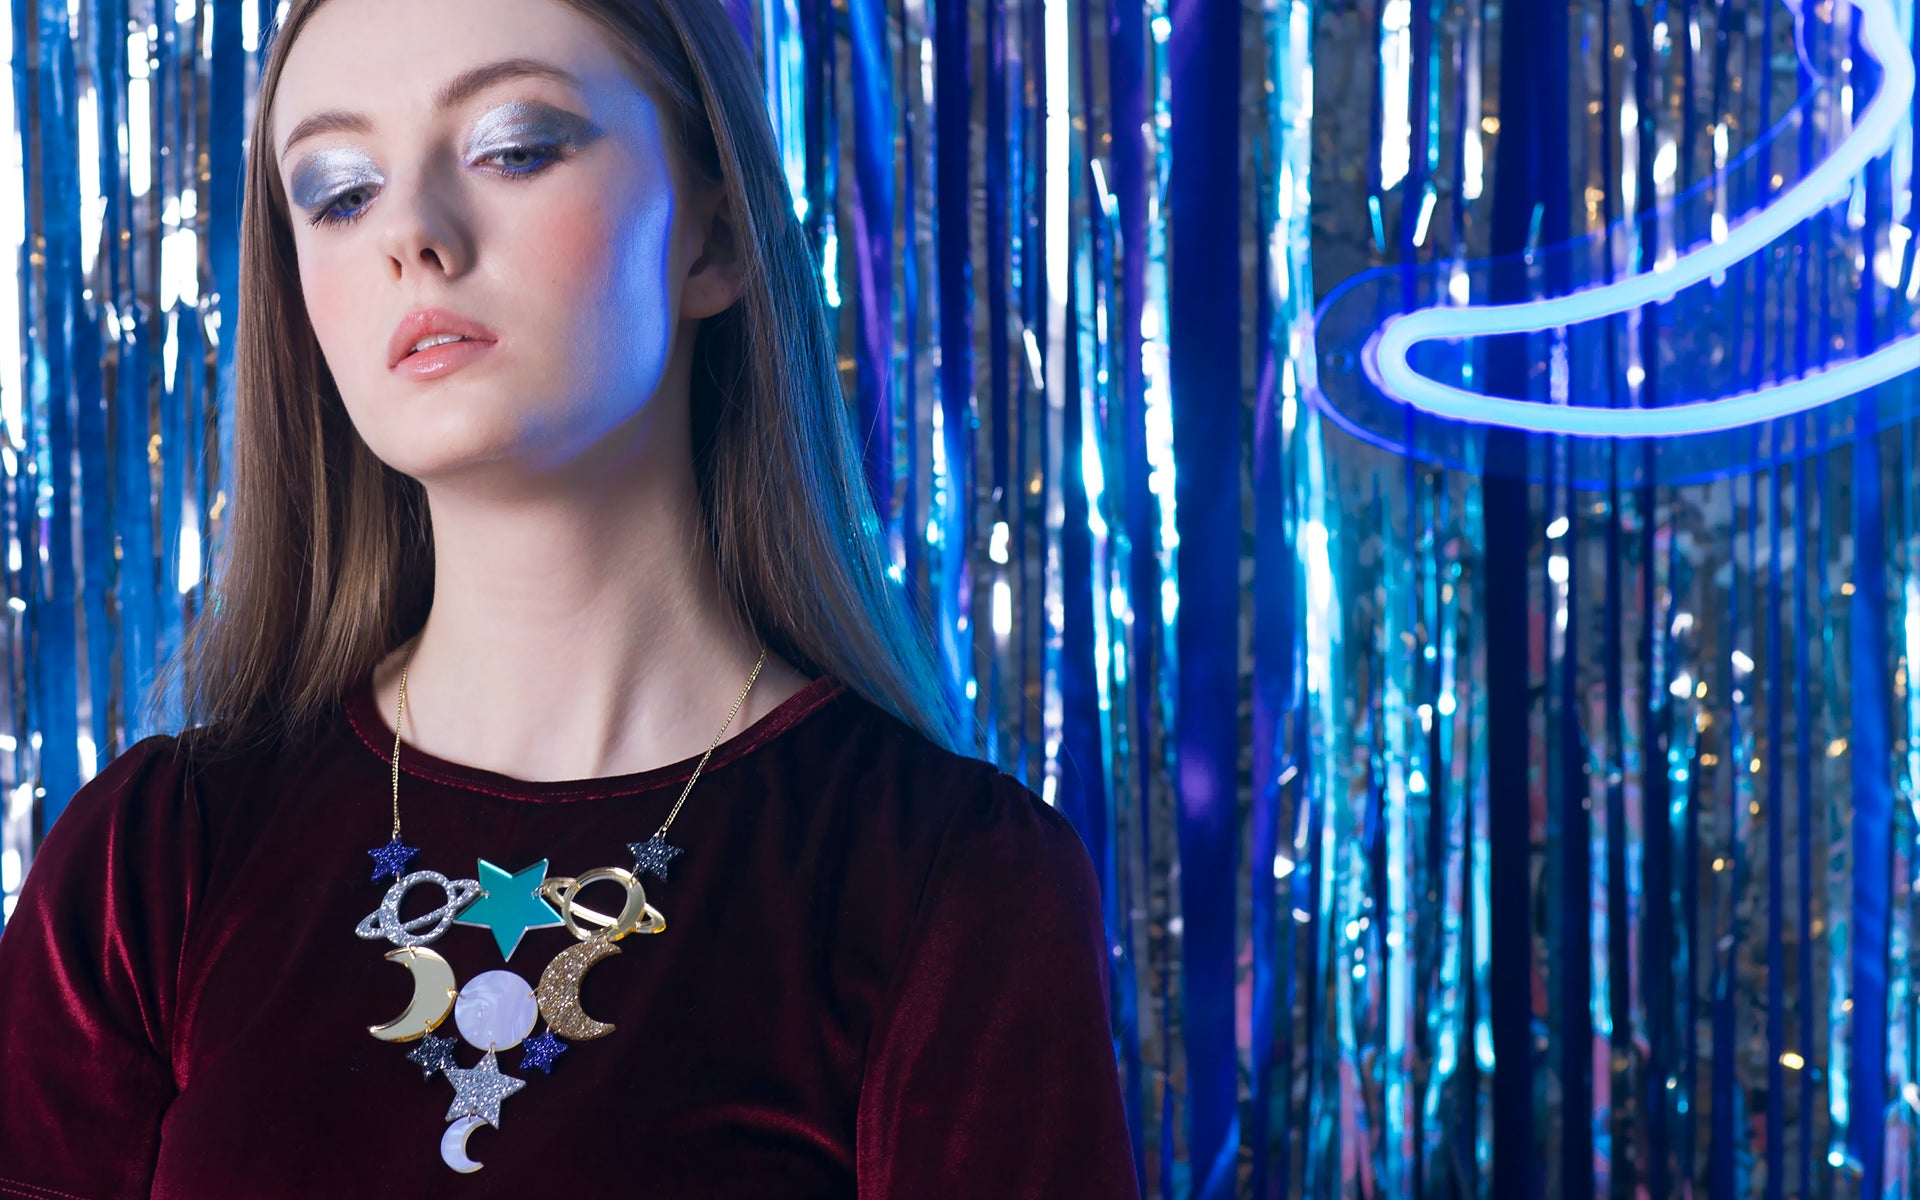 astral-planet-statement-necklace